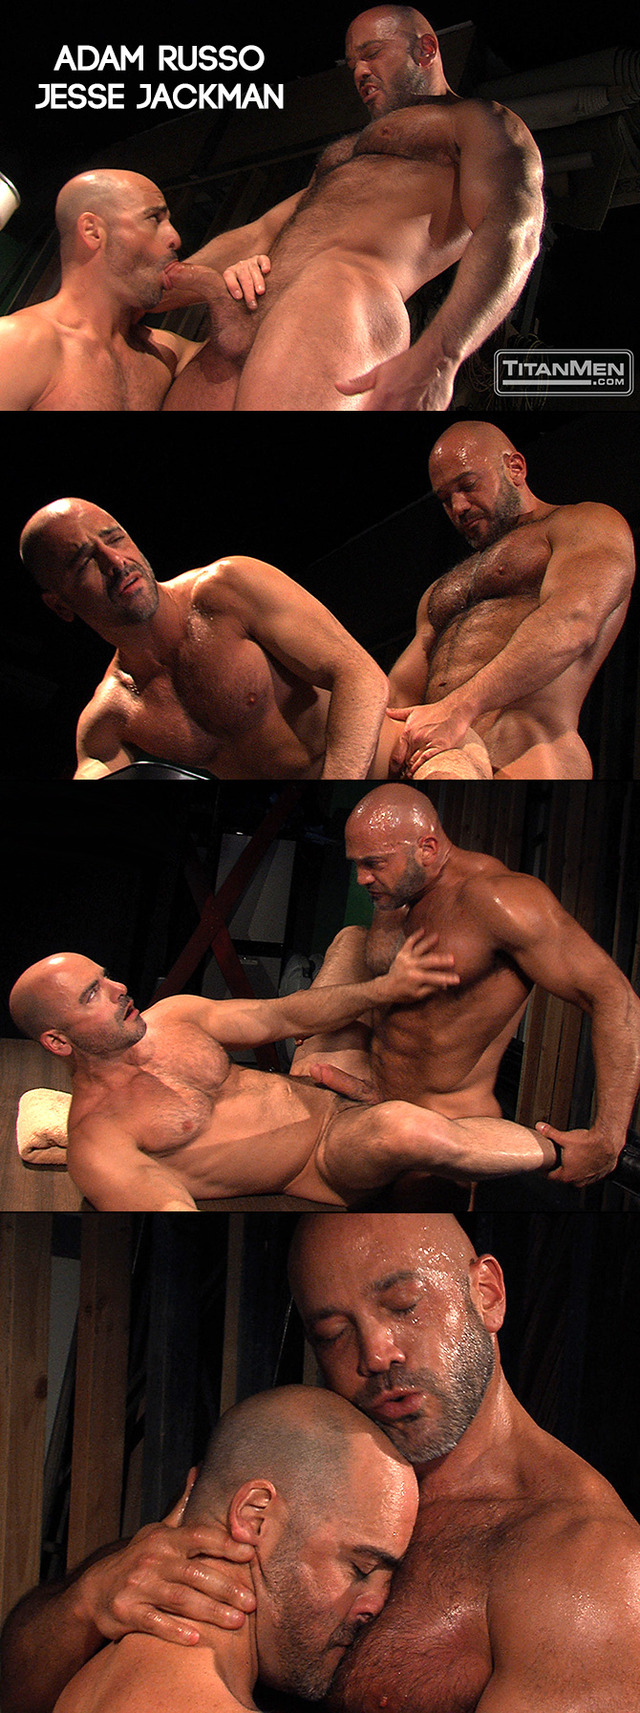 Jesse Jackman Porn adam mens collages titan dirty jesse russo down jackman titanmen